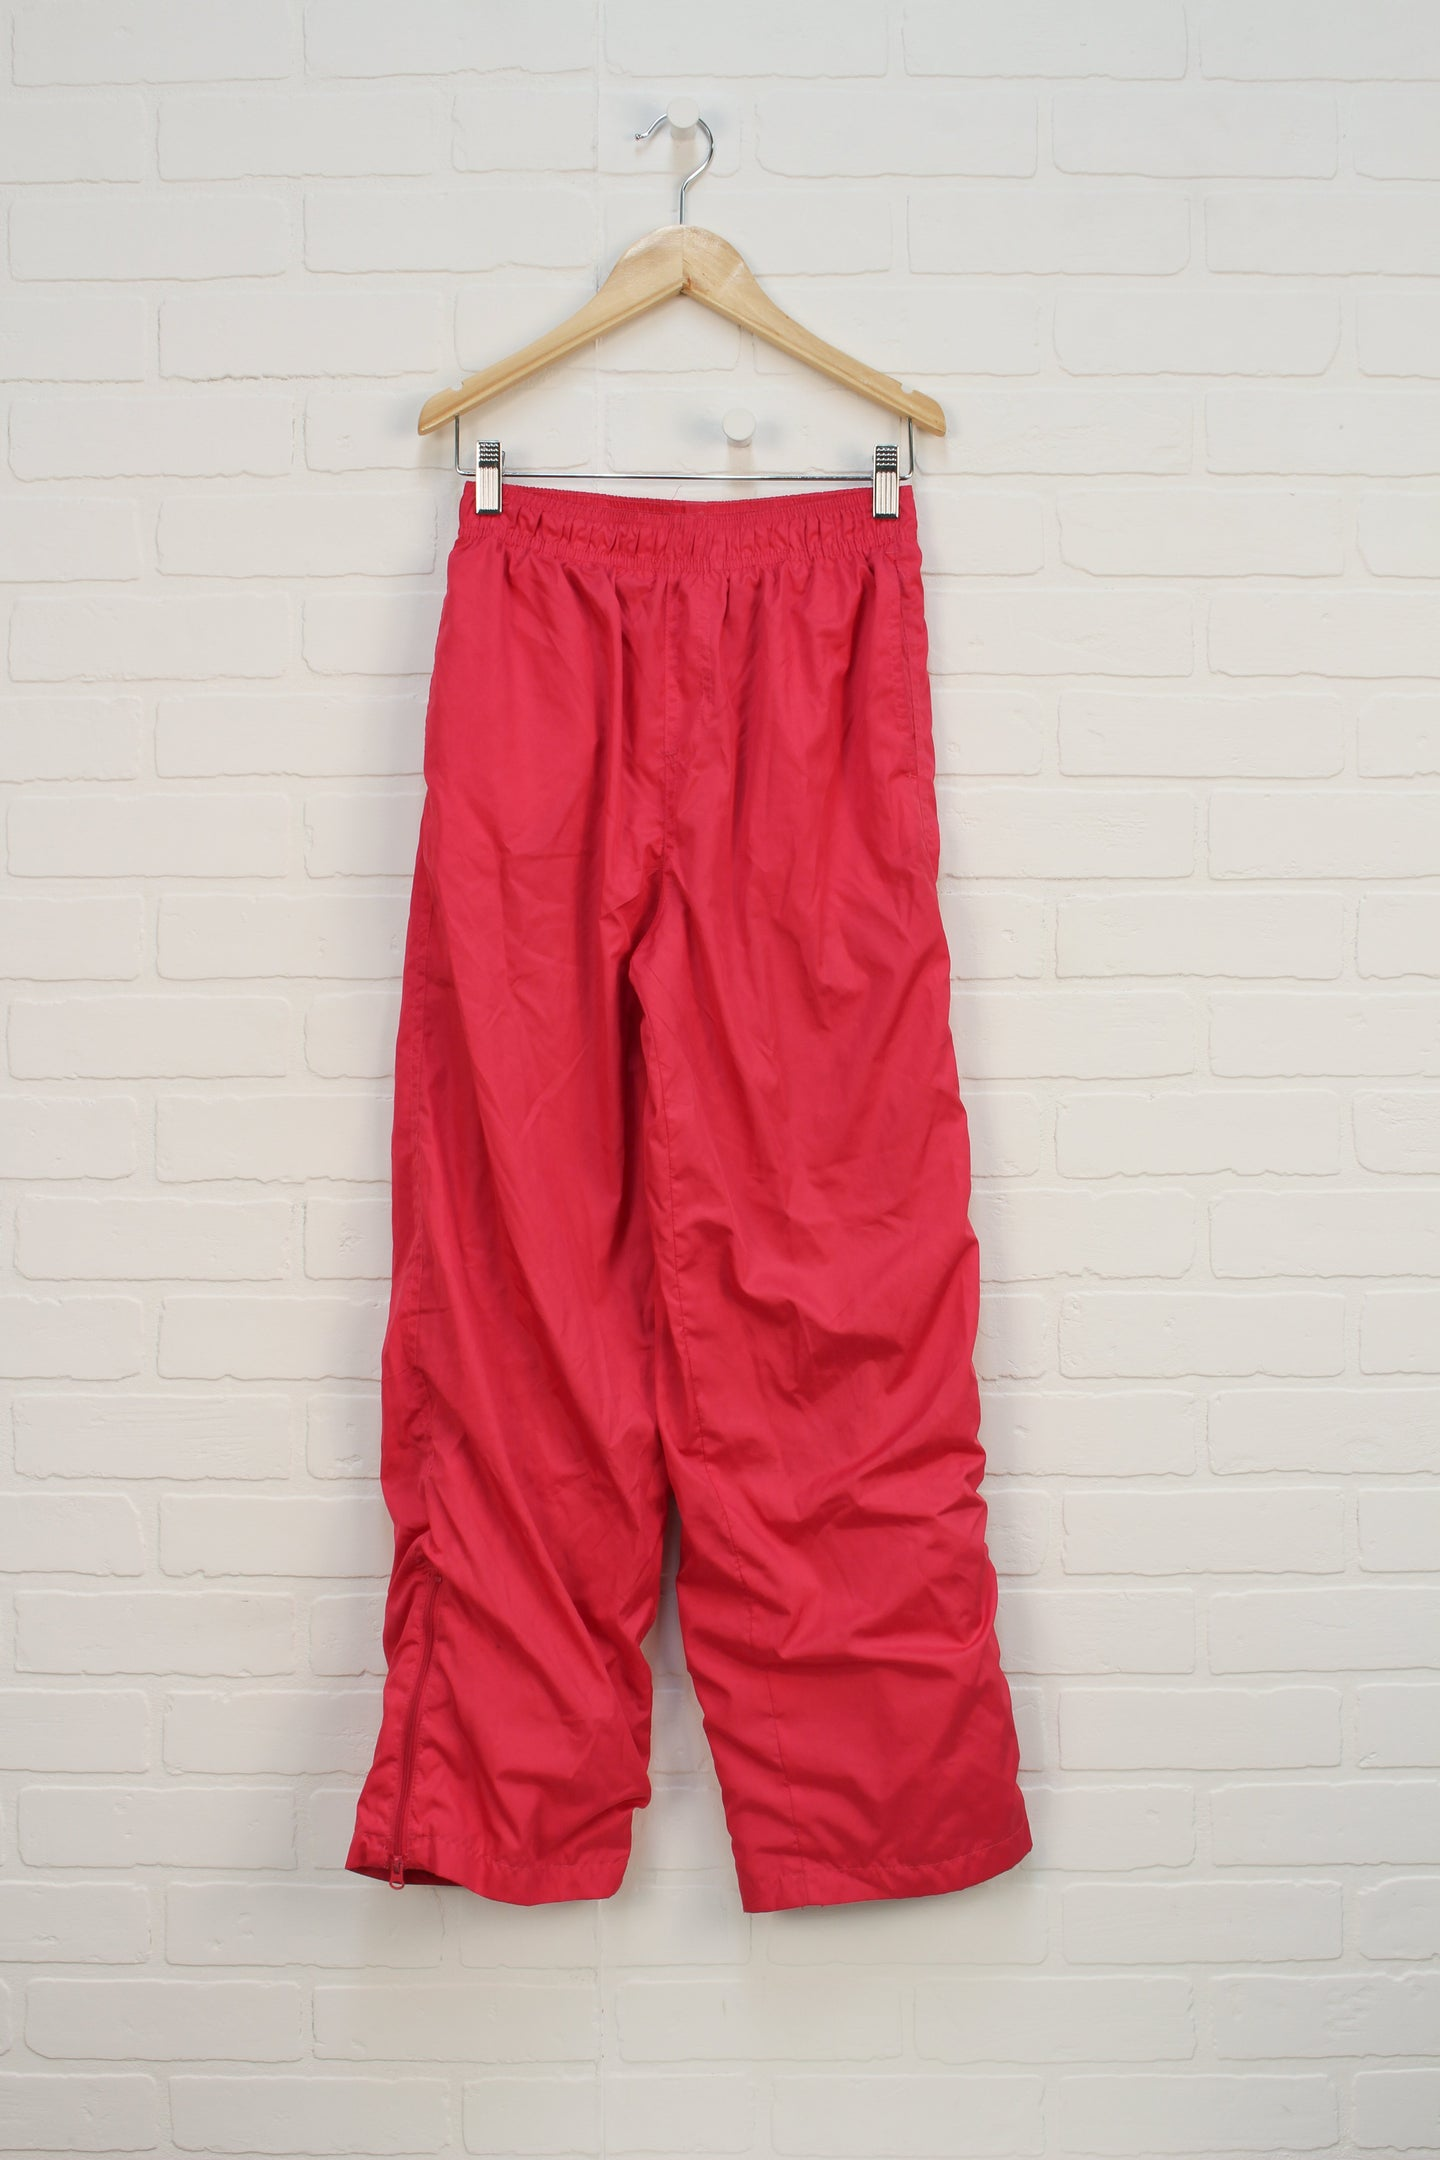 Hot Pink Jersey Lined Splash Pants (Size 10-12)